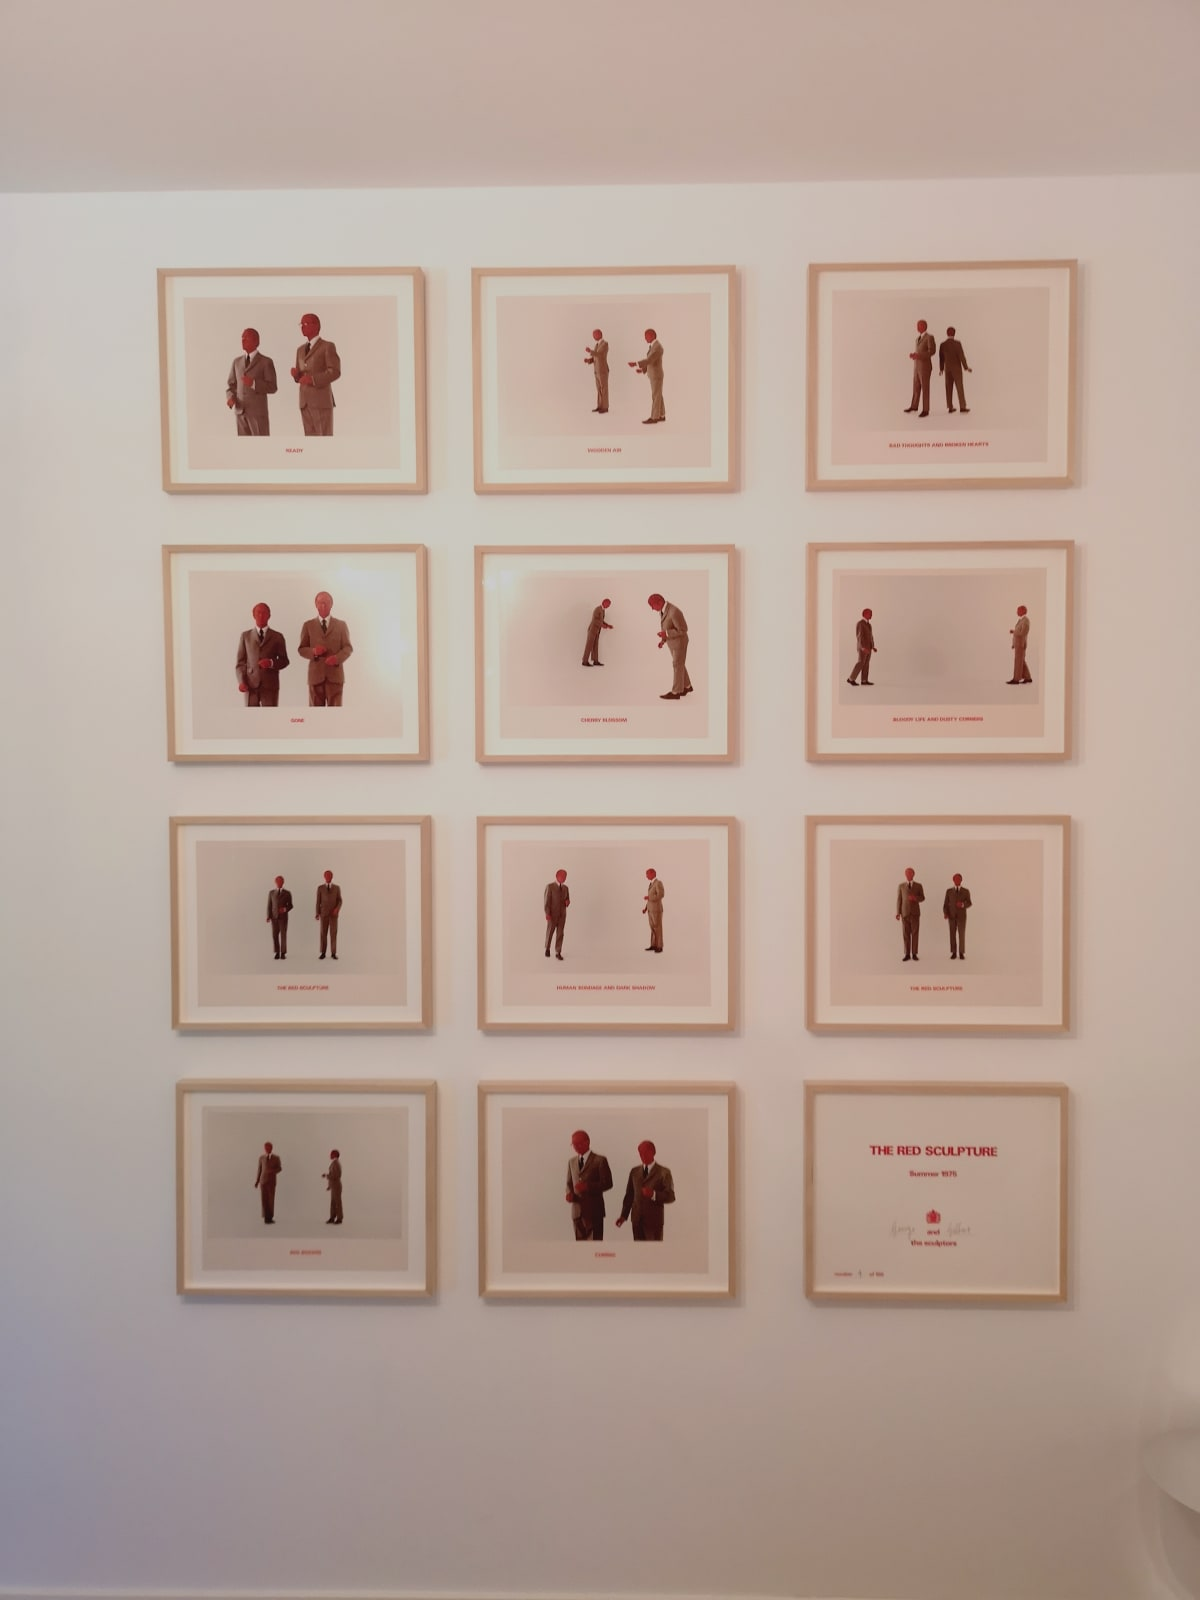 GILBERT & GEORGE The Red Sculpture, 1975